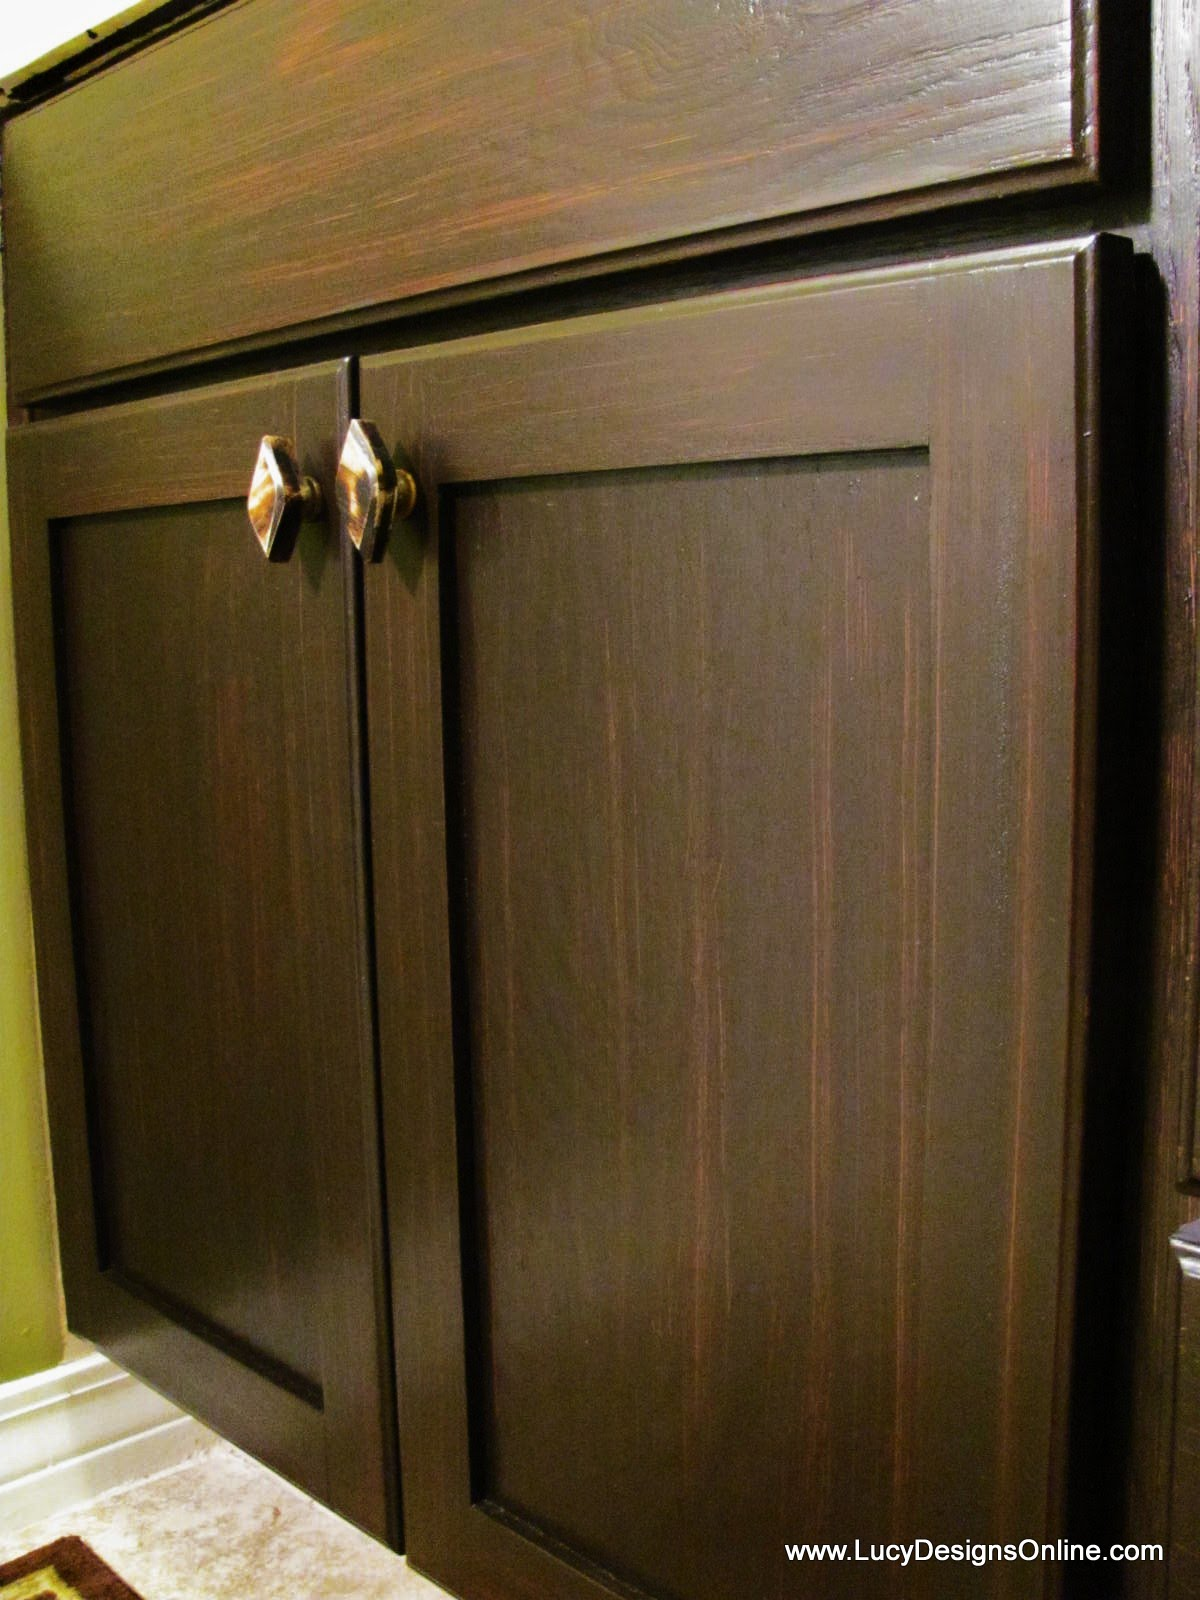 Staining Oak Cabinets Home Design Ideas